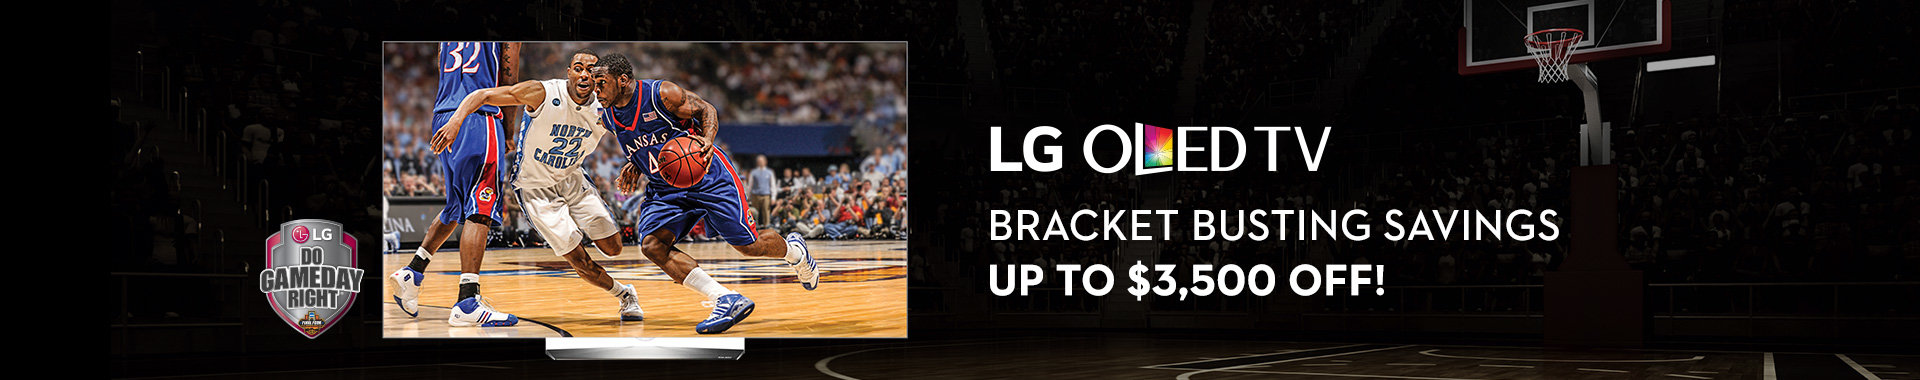 Bracket Bustling Savings on LG TVs